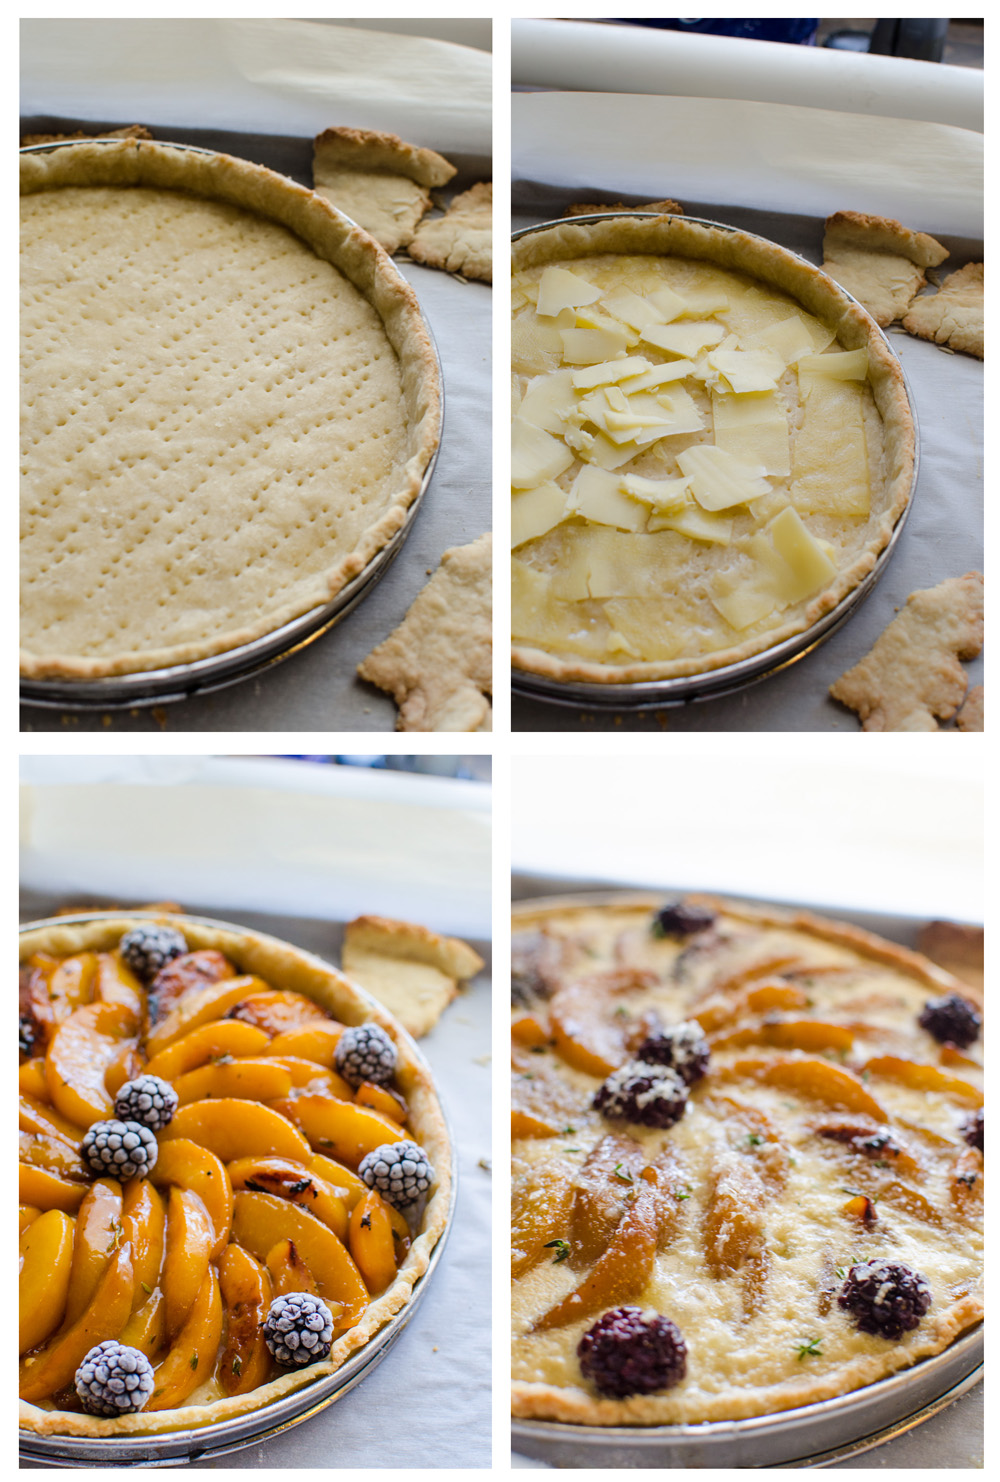 Cheddar, Caramelized Peach and Thyme Tart - A wonderfully fruity, tangy creamy fruit tart! A unique flavor profile that will wow your guests and perfect for any season!